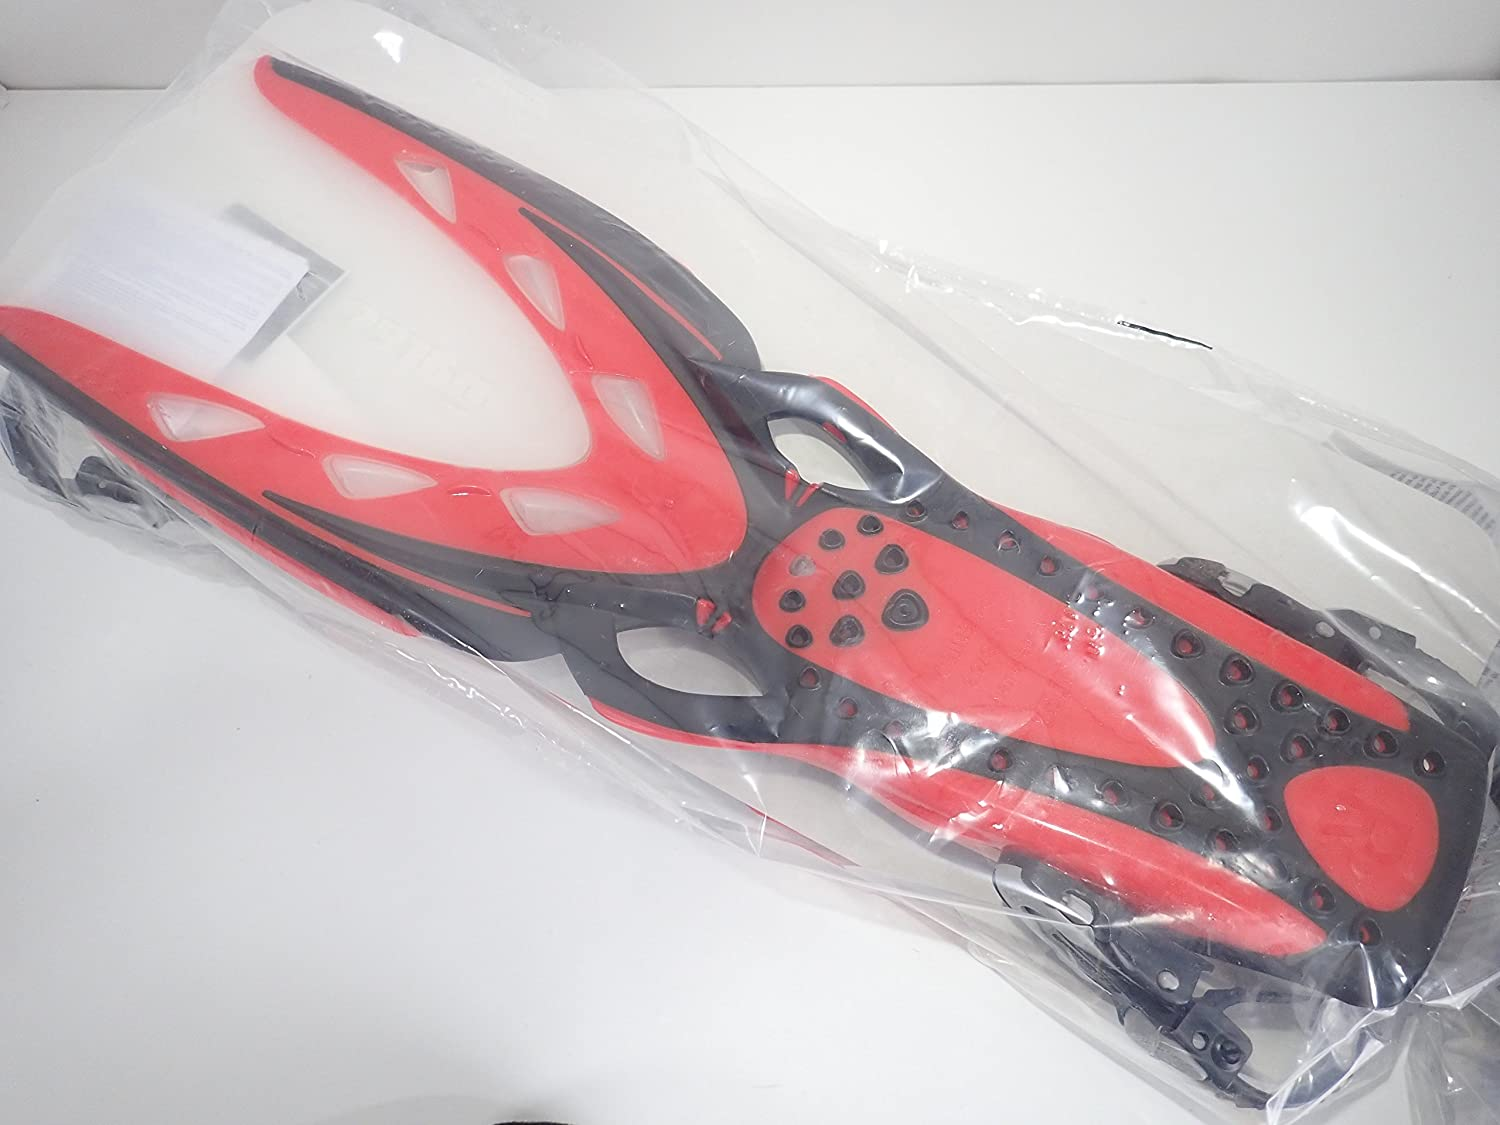 New Mares X-Stream Scuba Diving Fins - Red (Size Regular) by Mares B006LR4PKC